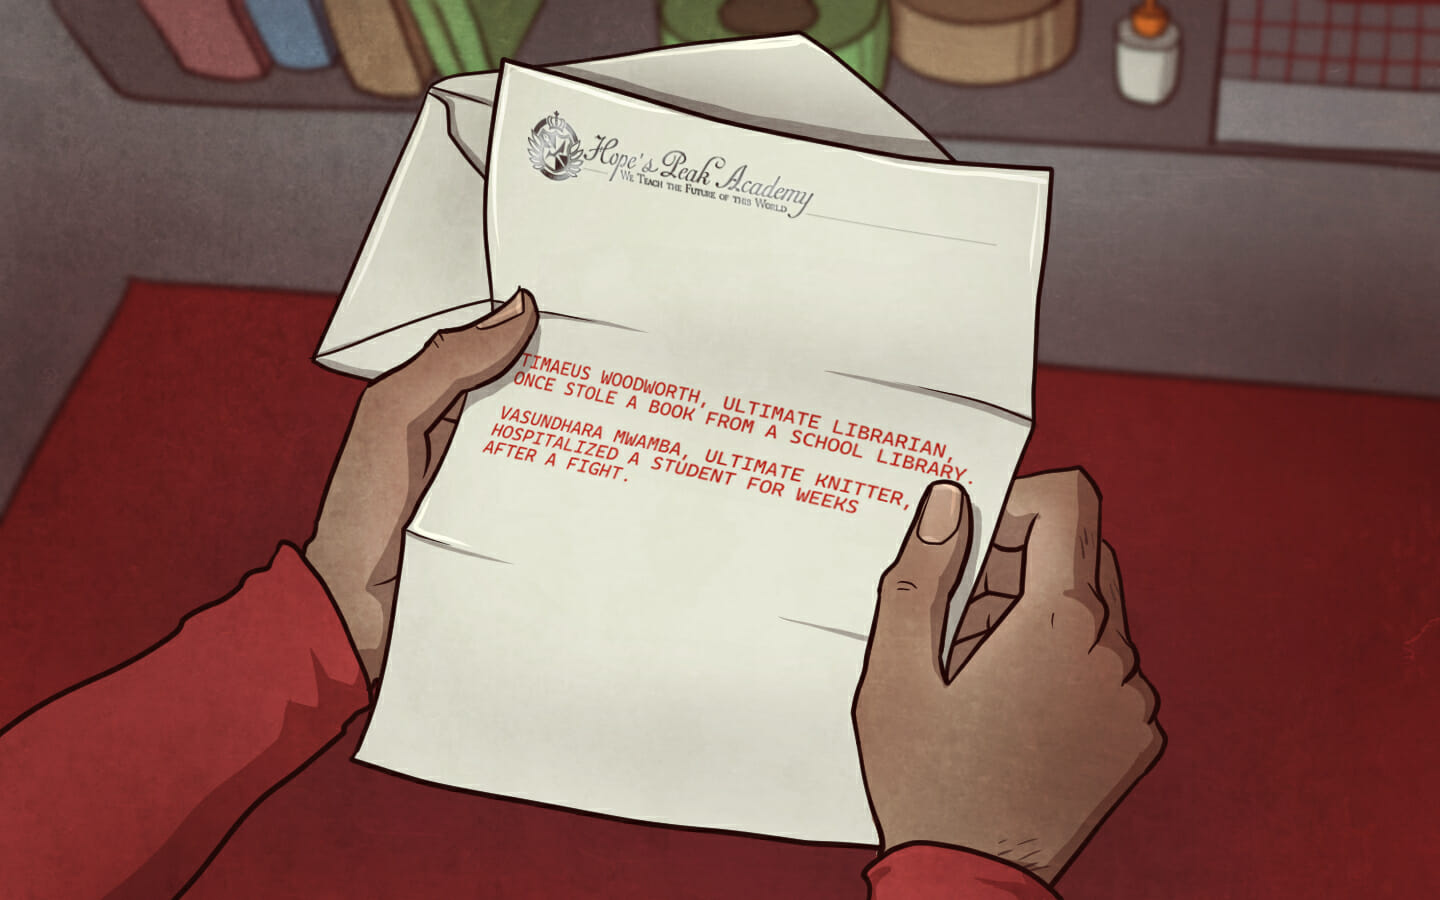 The letter, written on Hope's Peak Academy stationery in messy red handwriting.